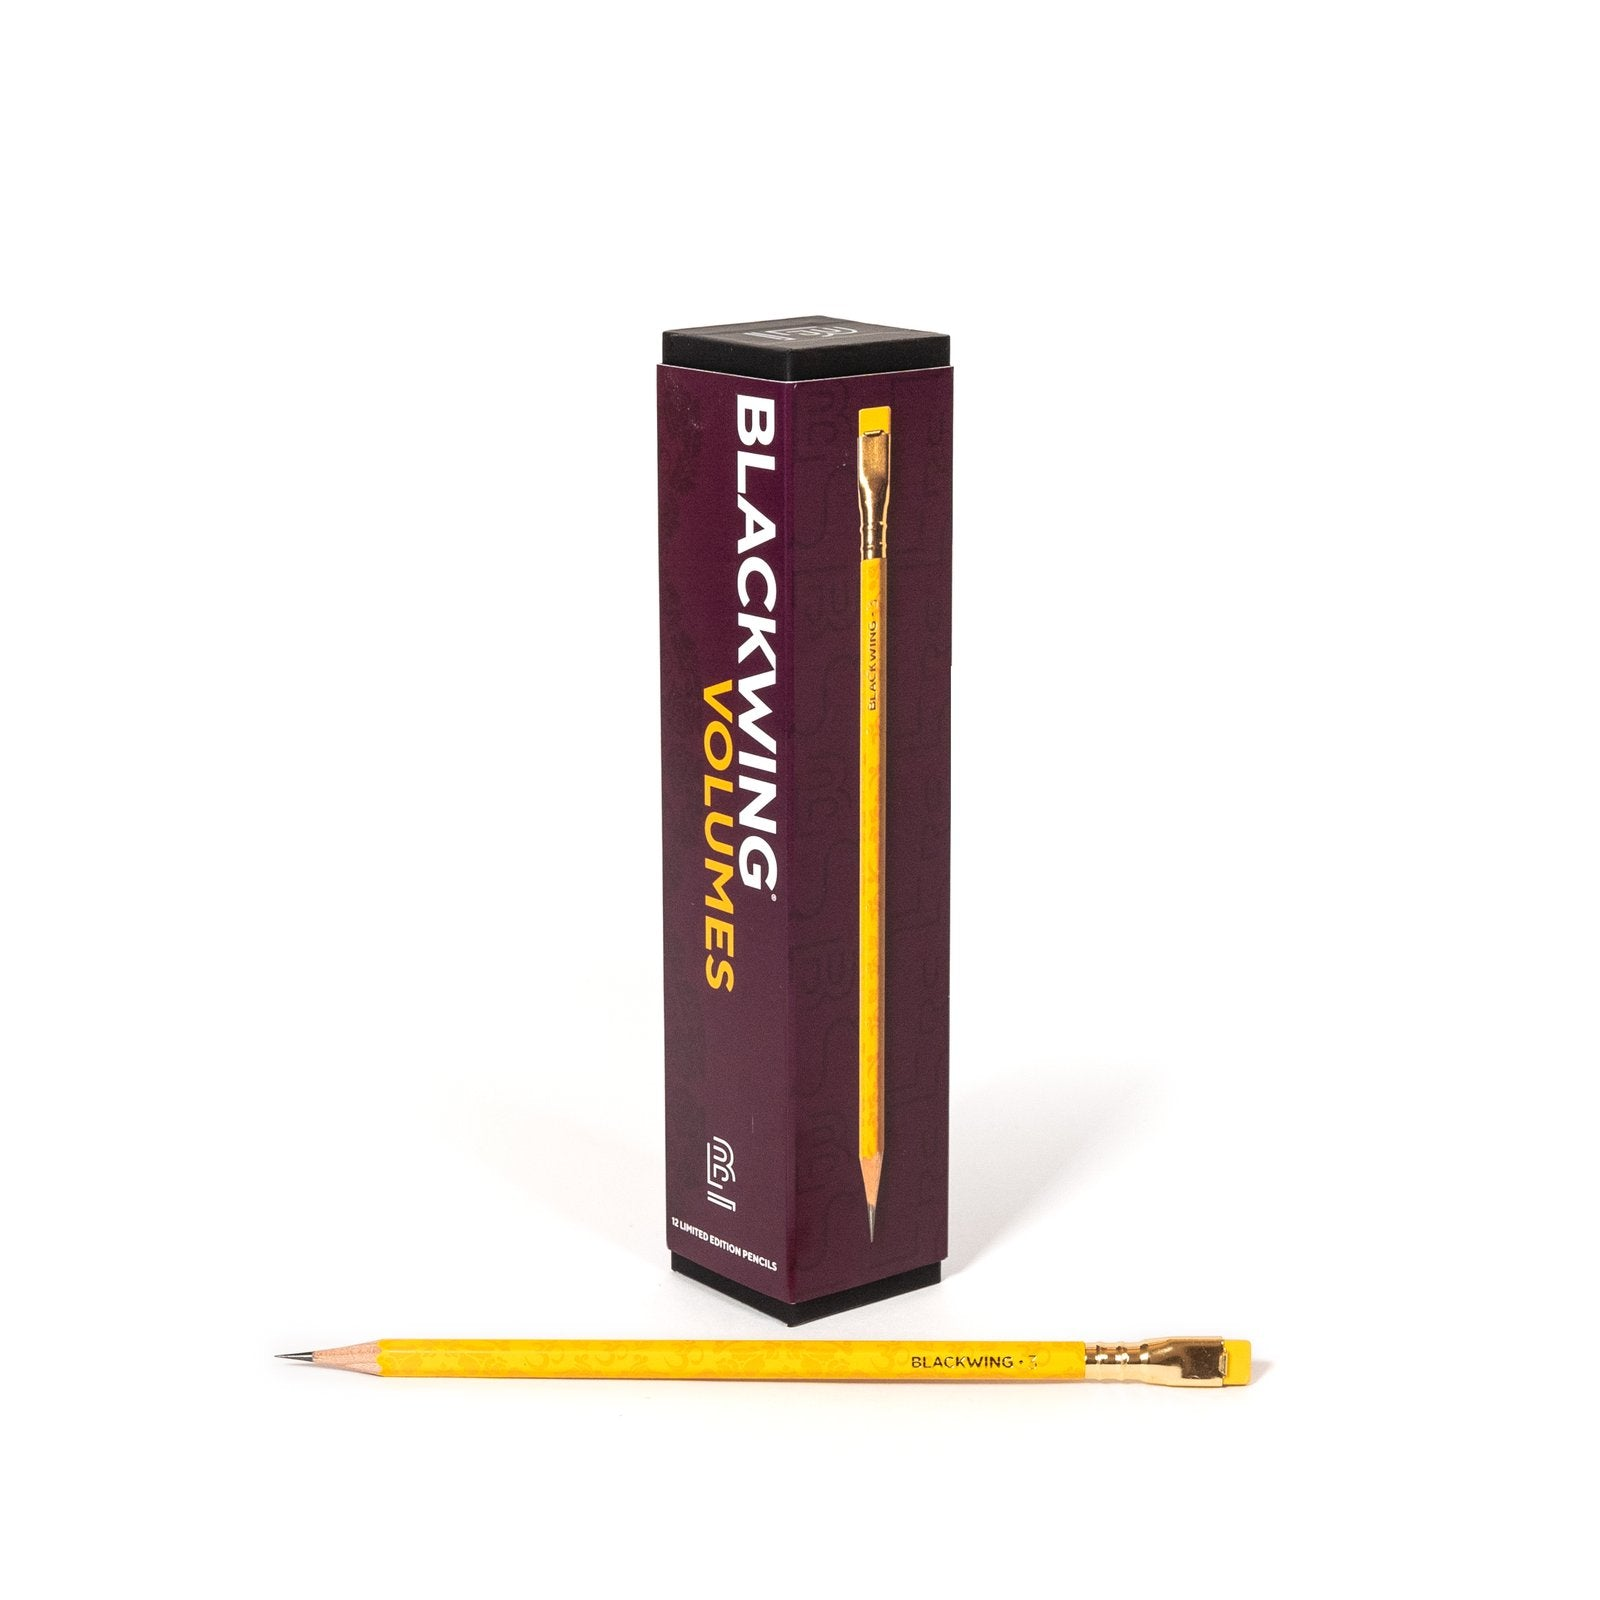 Blackwing Volume 3 (12 Pack)